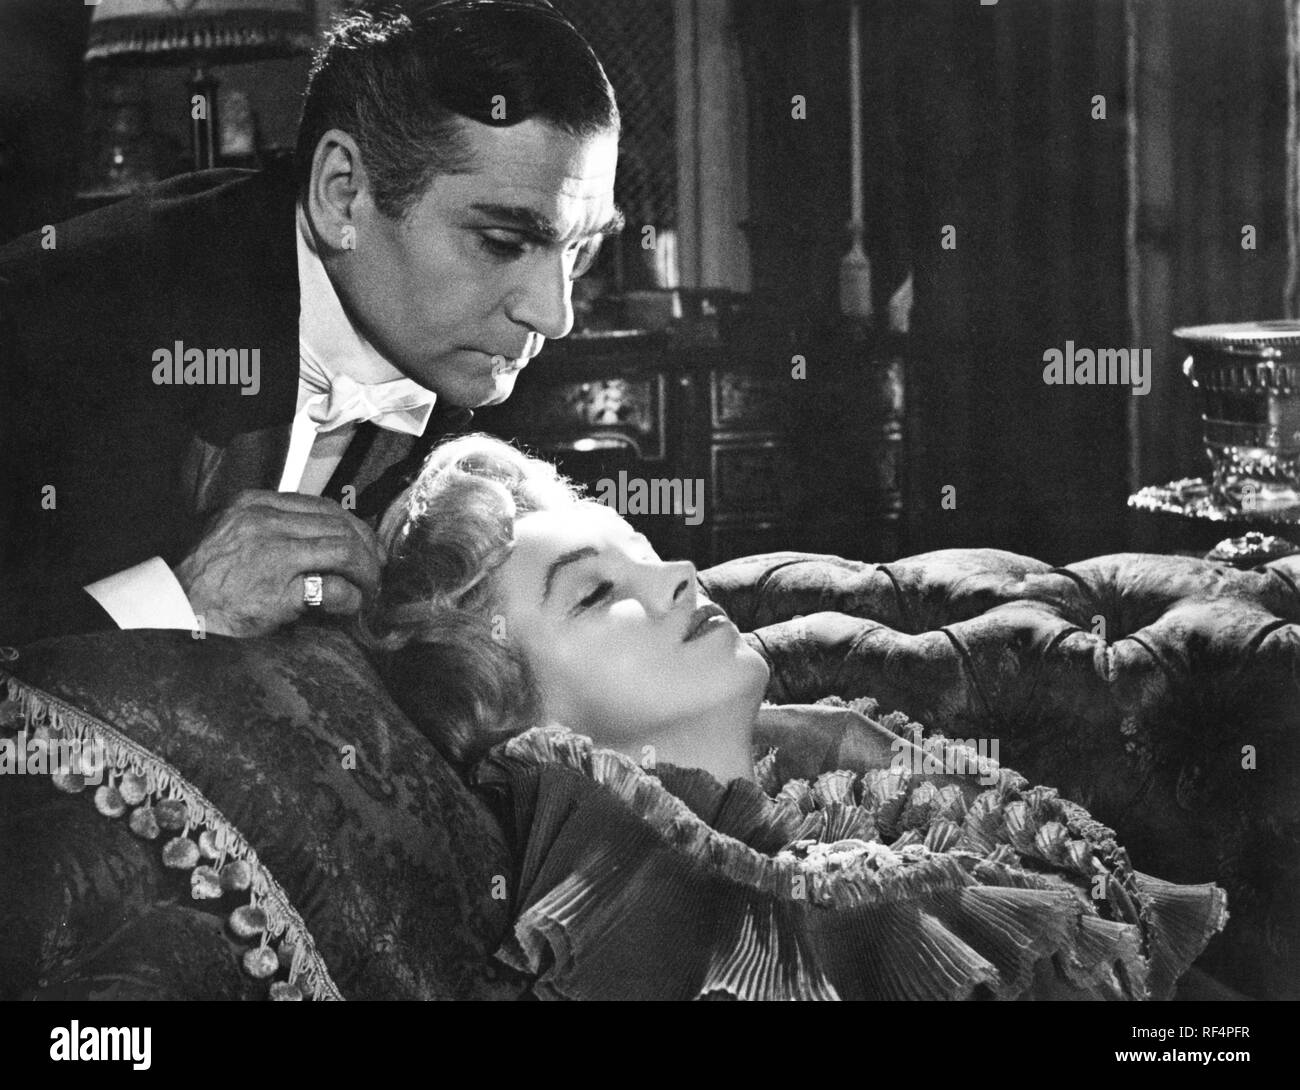 The Prince and the showgirl, Laurence Olivier et Marilyn Monroe, 1957 Banque D'Images